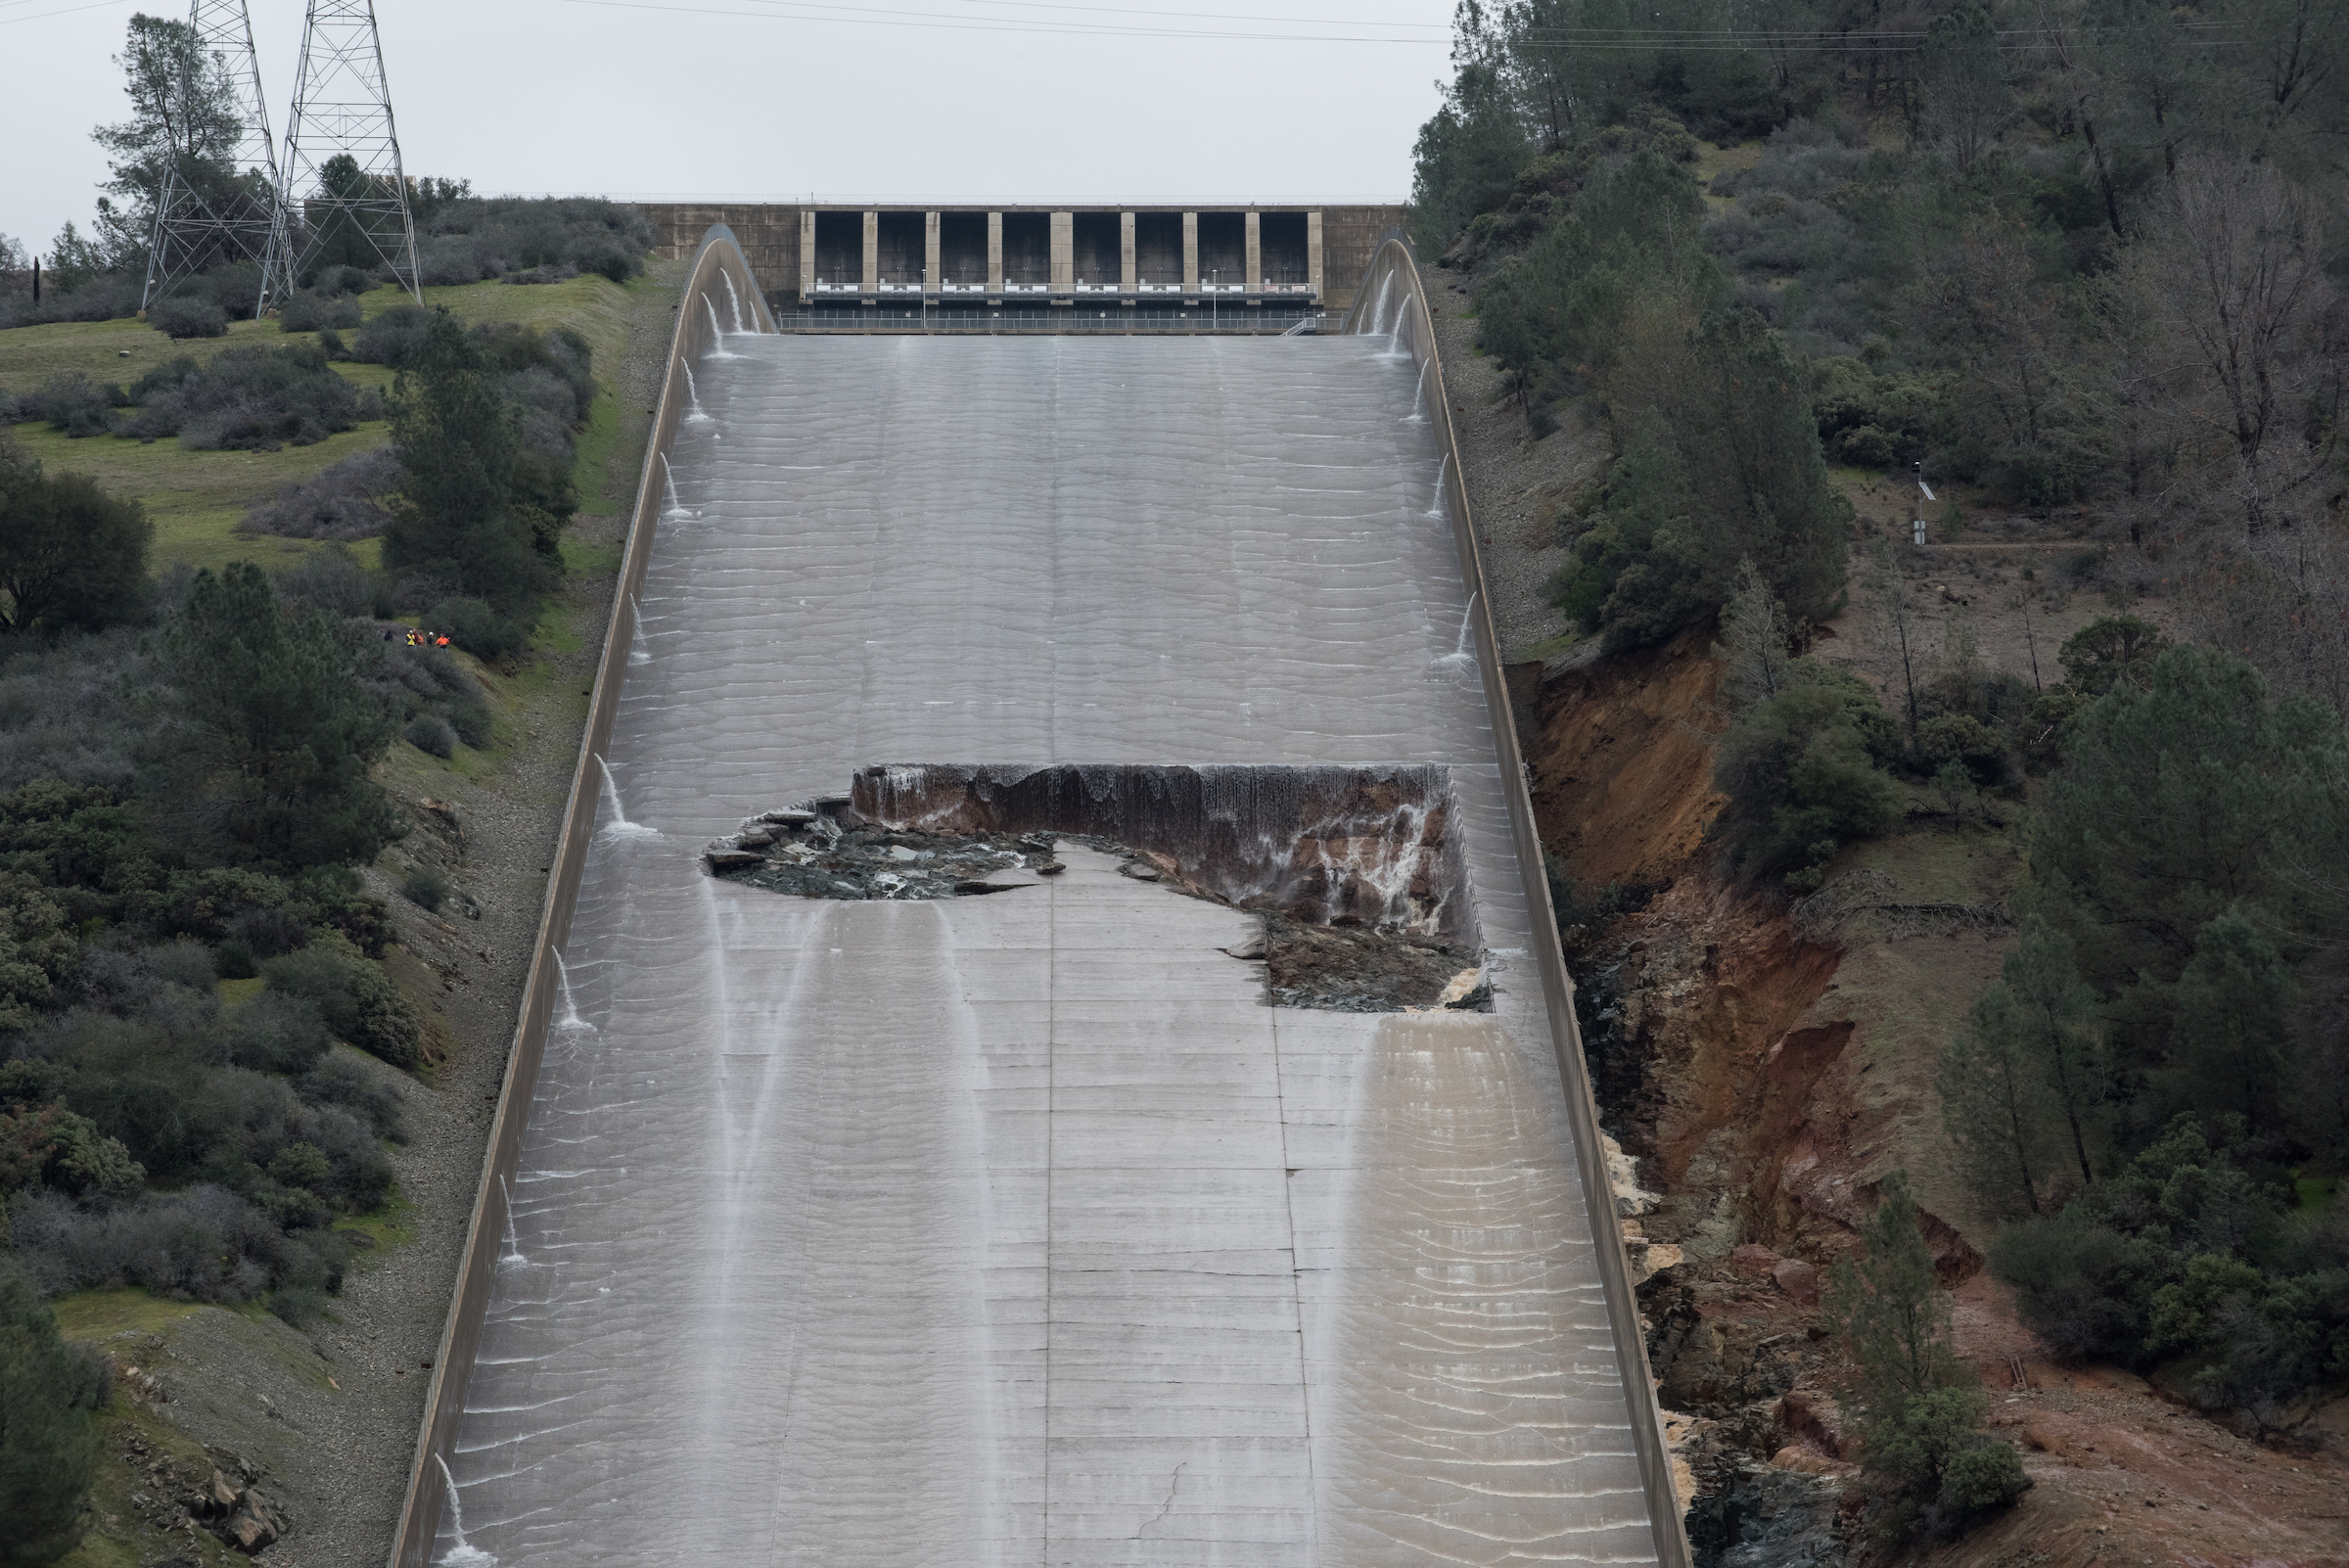 PHOTOS: Oroville Dam Spillway Trouble and Evacuation | The ...